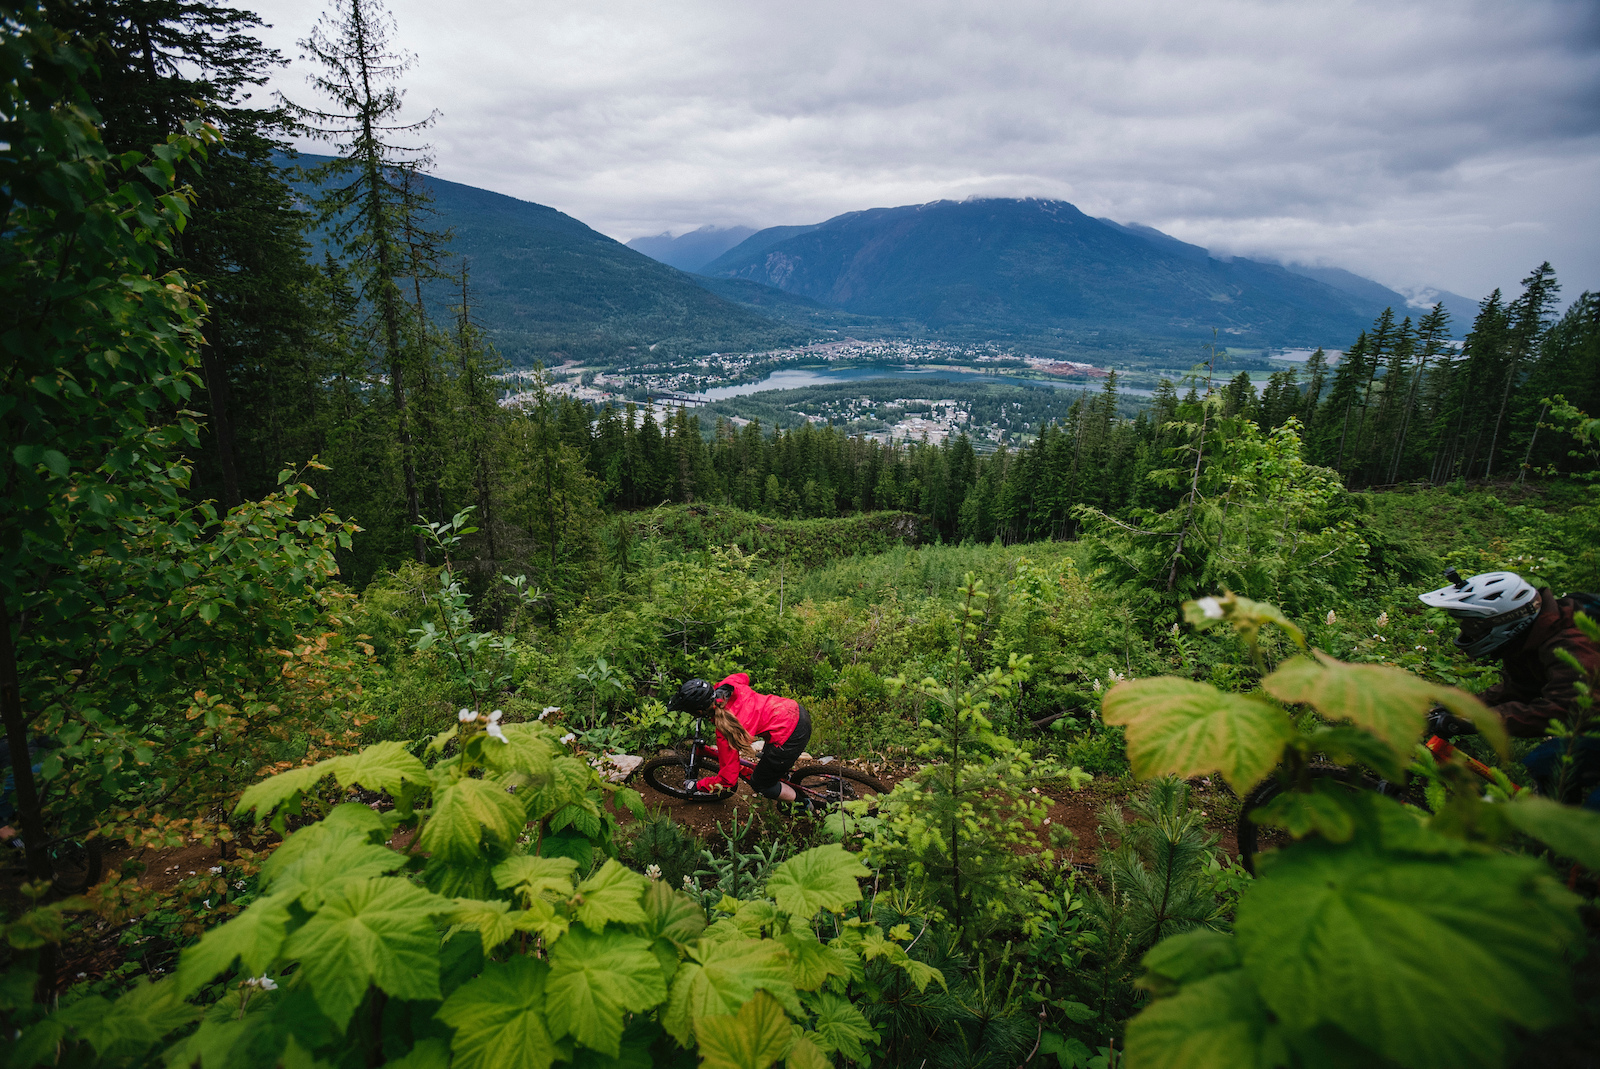 Revelstoke is famous for a reason